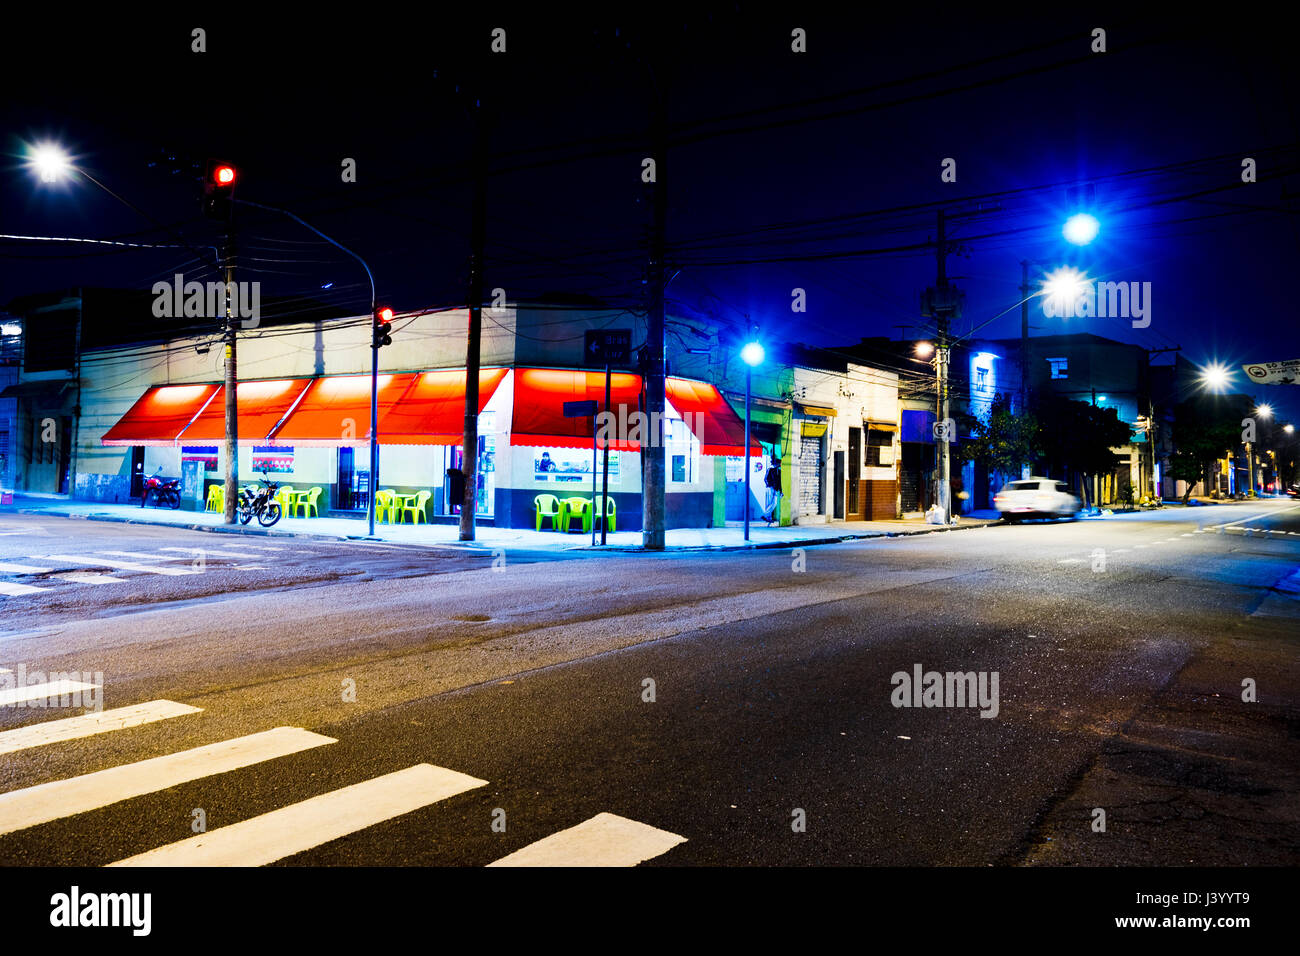 night street scenery with bar at Sao Paulo, brazil - Stock Image